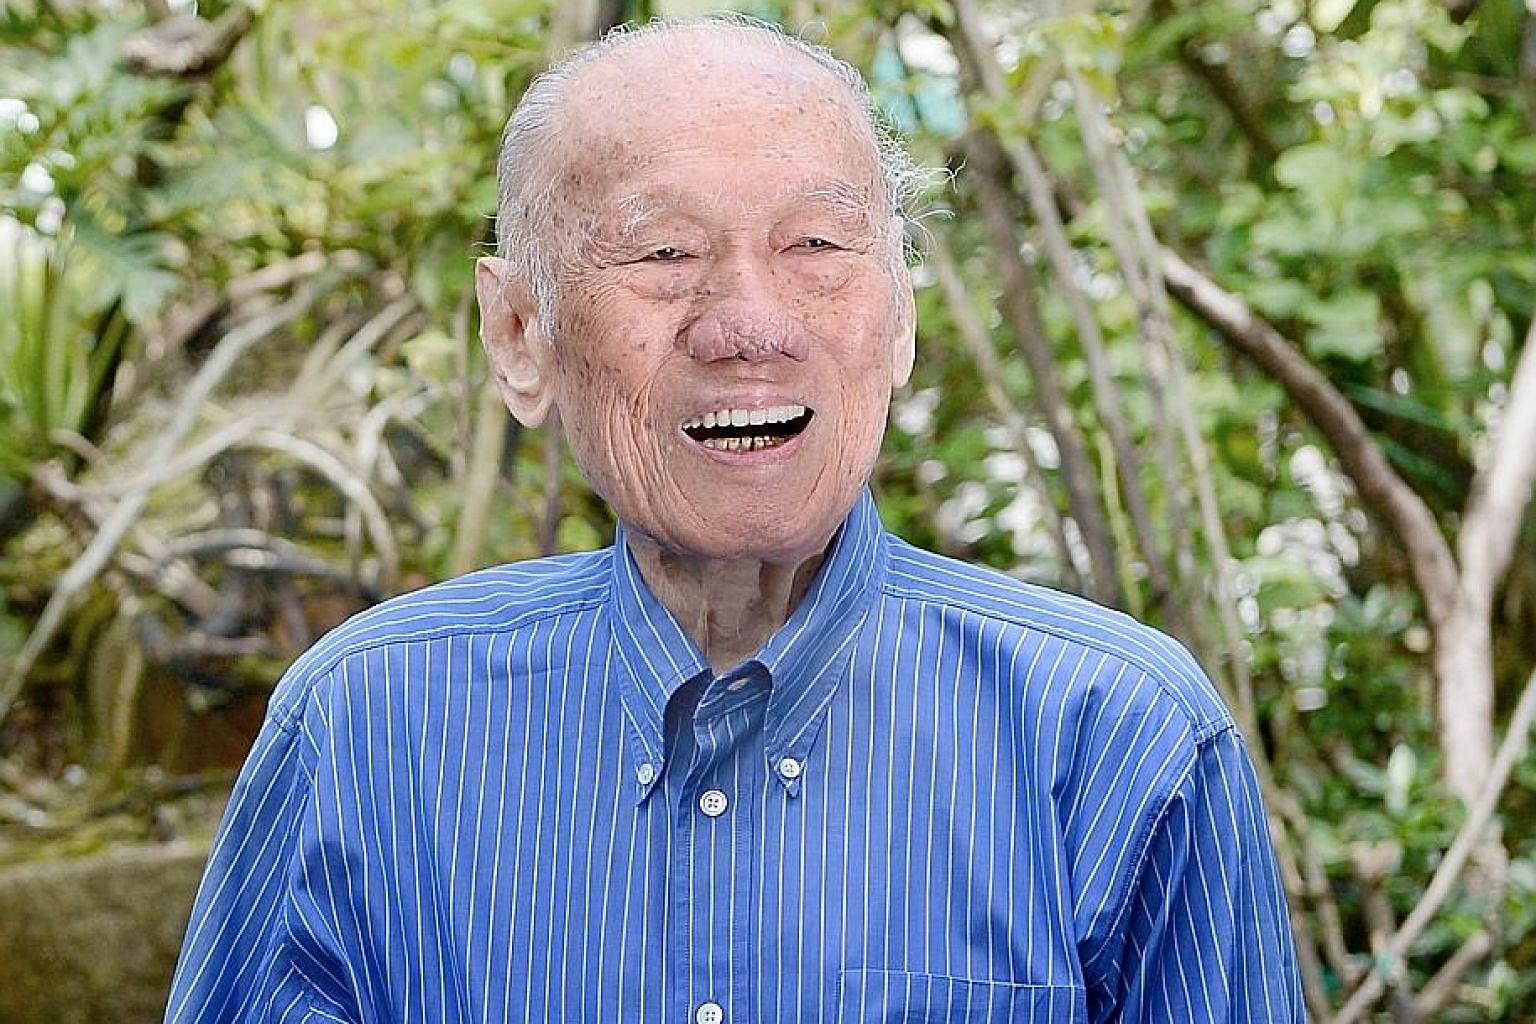 Mr Lee Khoon Choy, as ambassador to Indonesia in the 1970s, played a crucial role in thawing relations between the two countries, said PM Lee Hsien Loong.